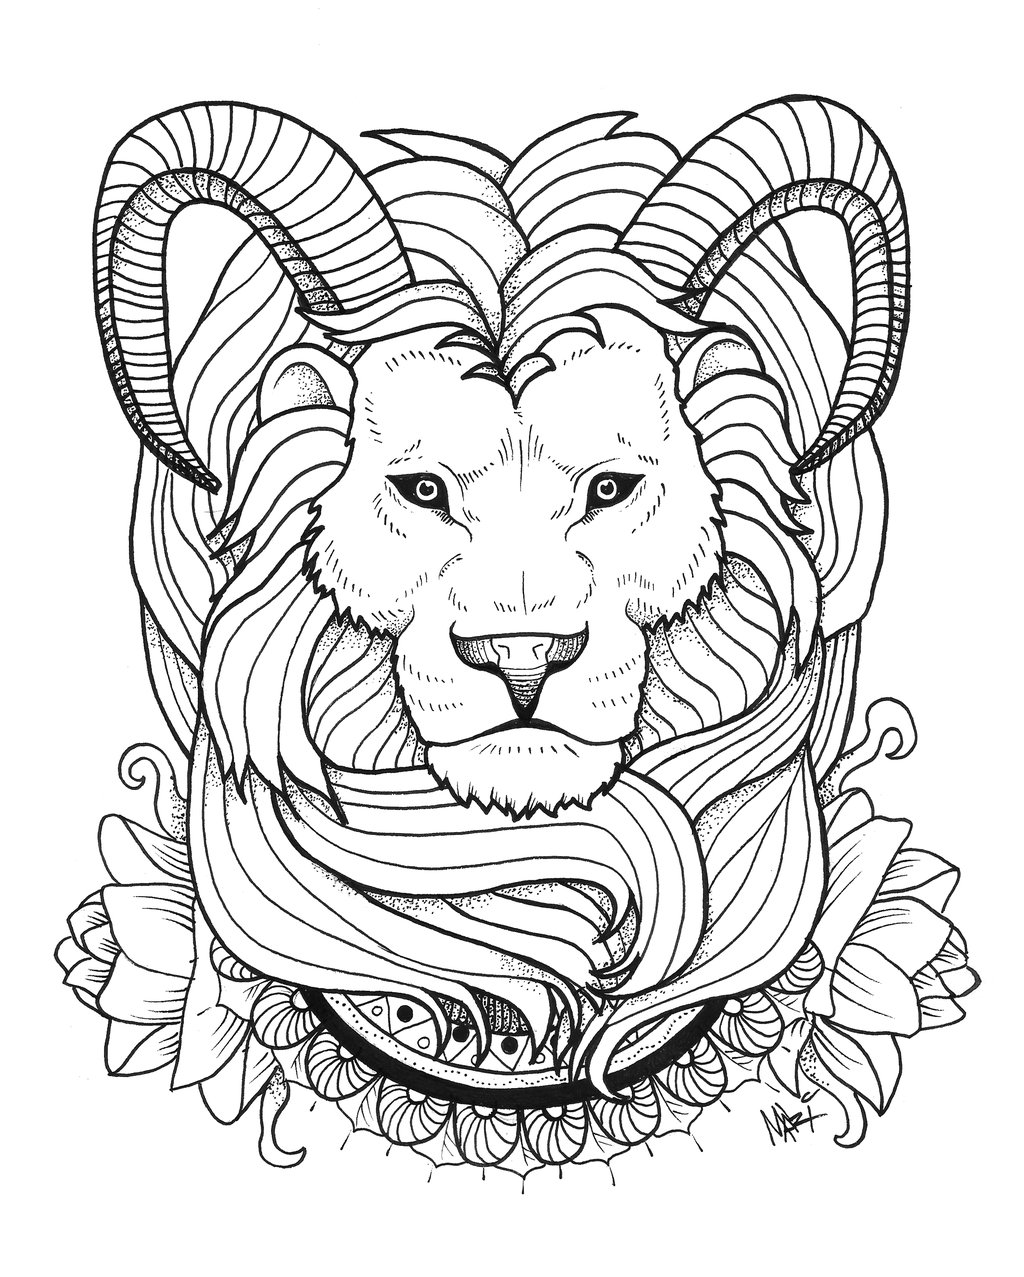 Fluffy lion head with sheep horns tattoo by Mary Marylp